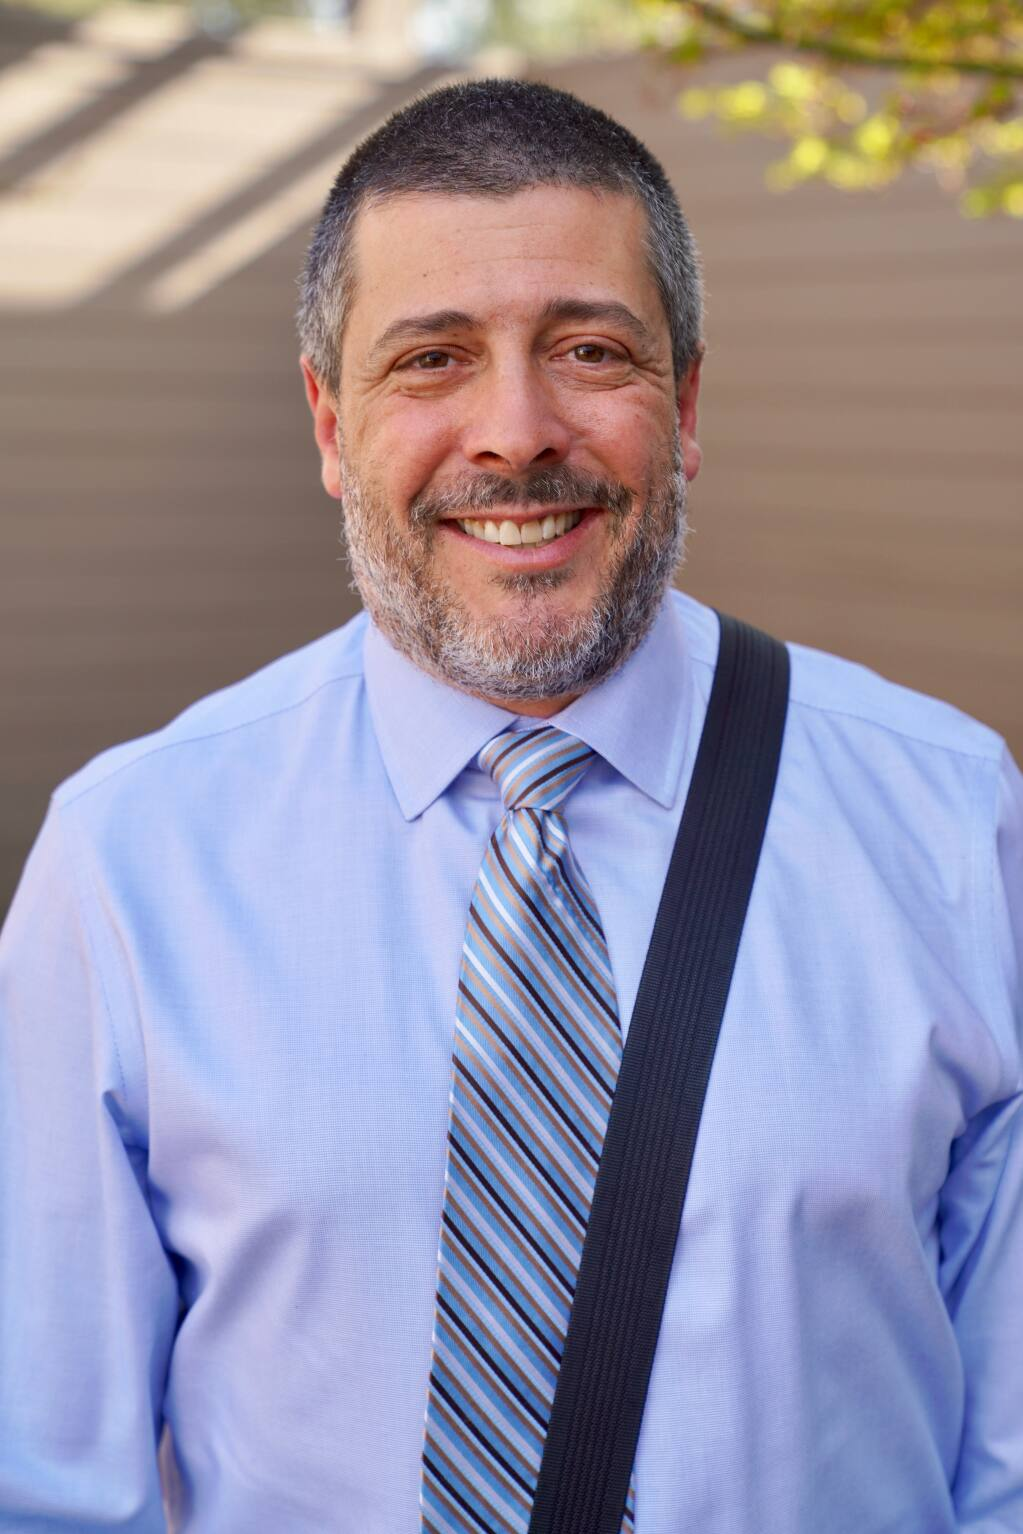 Matt Villano, a Healdsburg-based journalist who has contributed to The Press Democrat, Sonoma Magazine and CNN, spent over $1,300 to establish himself as a limited liability company to continue working under Assembly Bill 5. (courtesy photo)